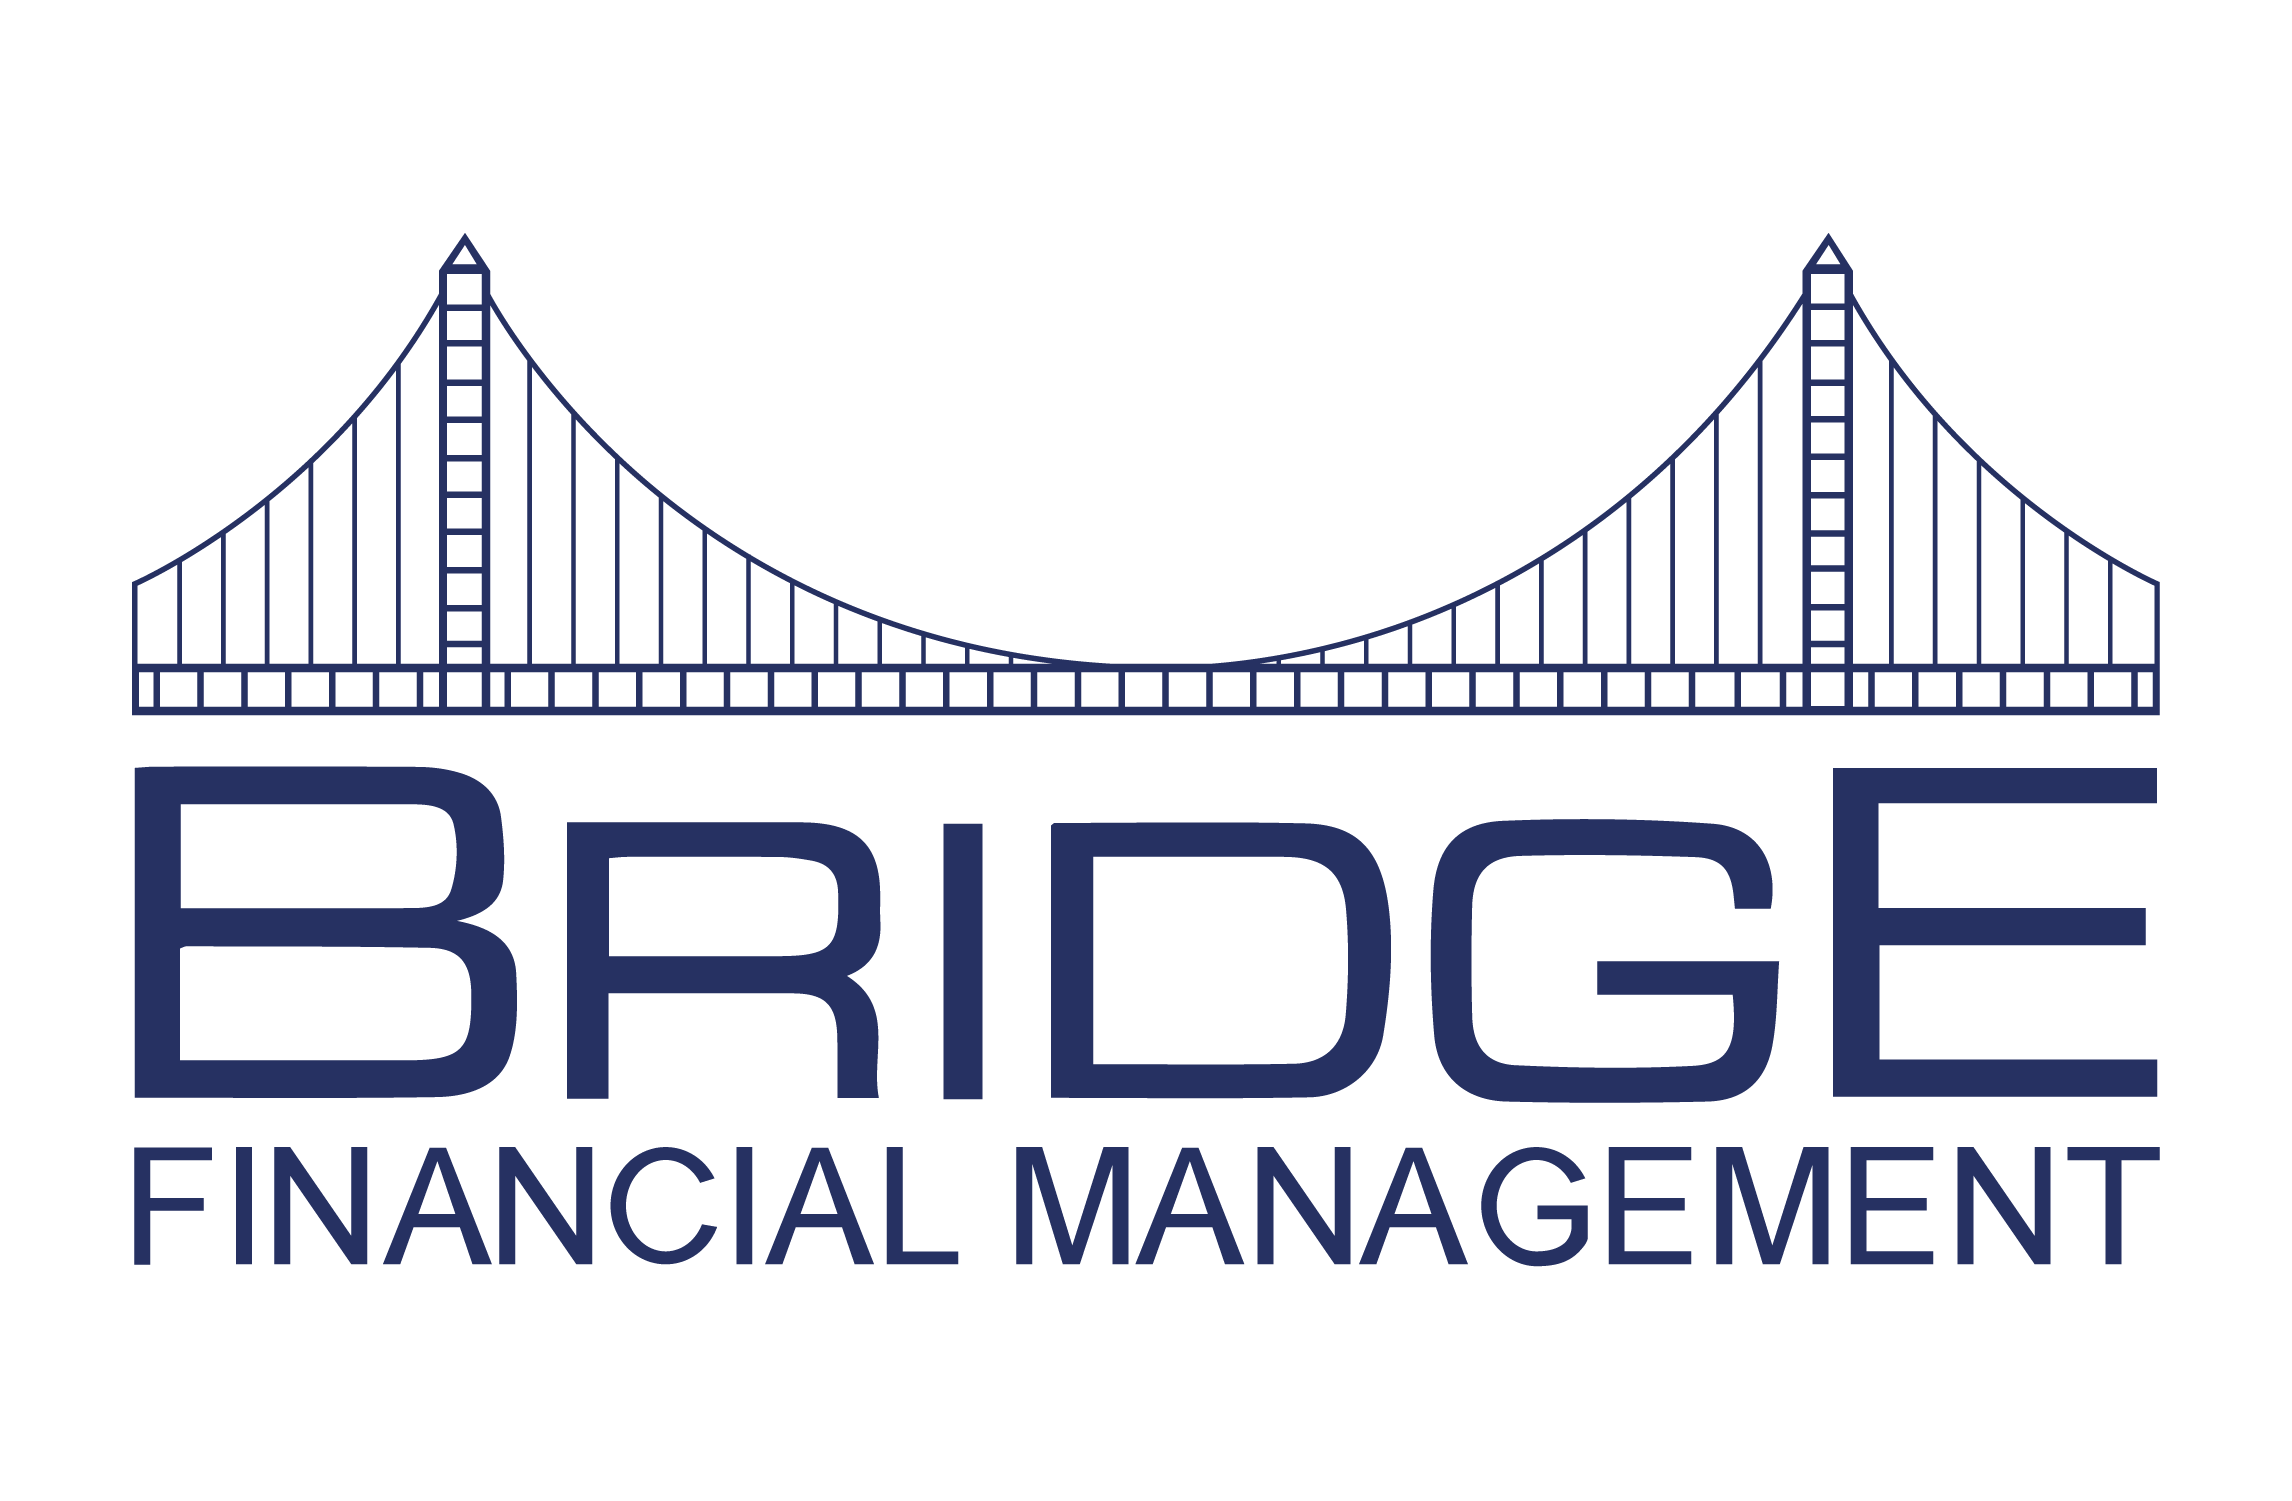 Bridge Financial Management